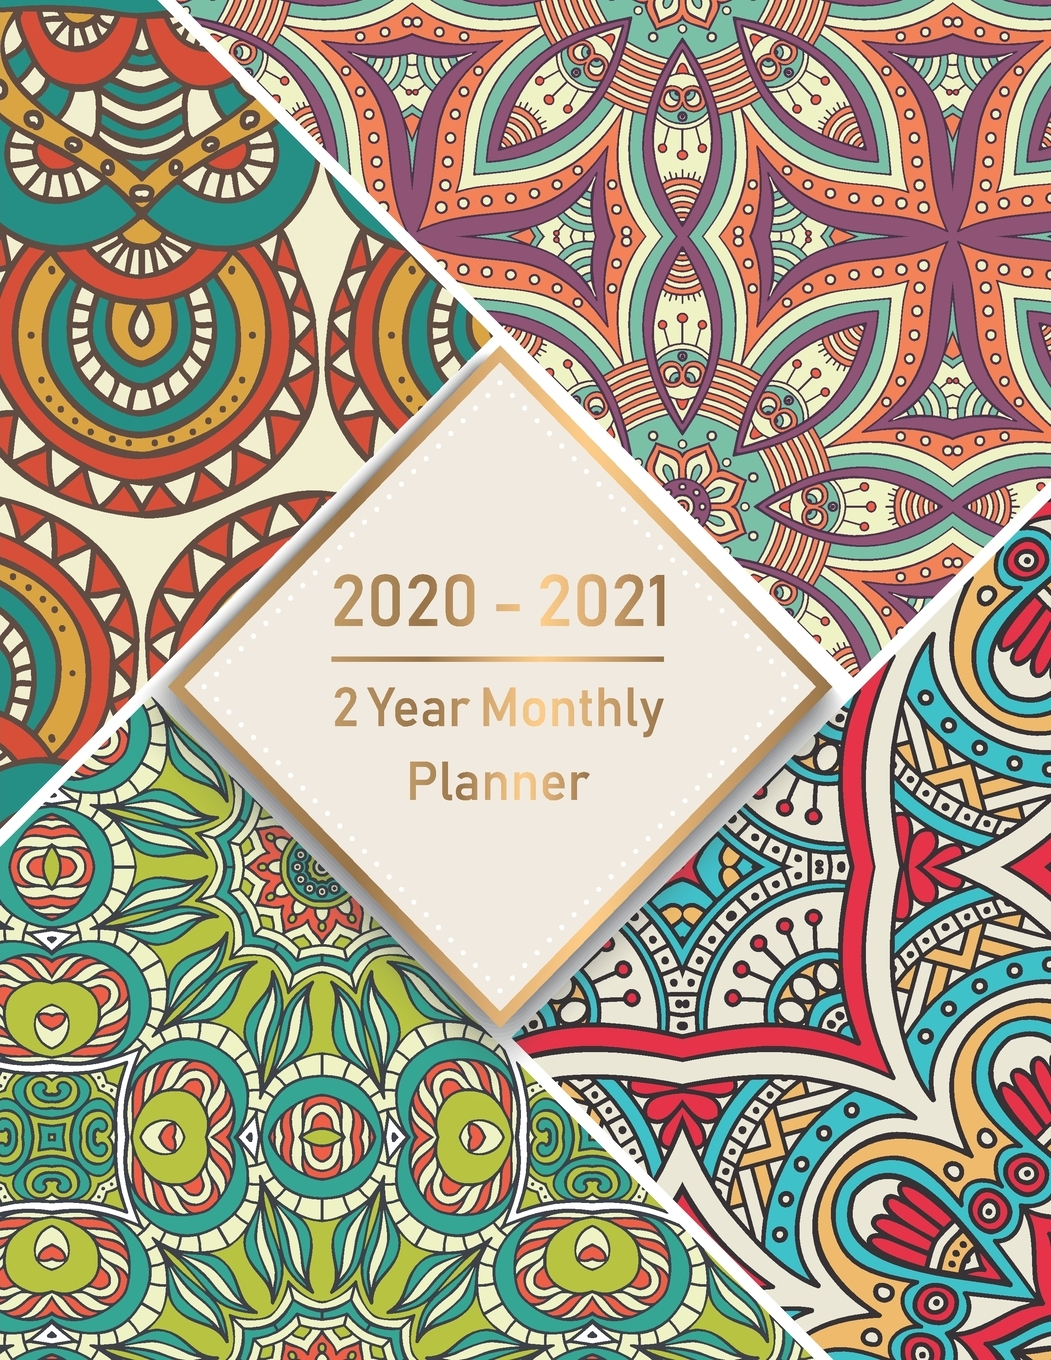 2020-2021 Monthly Planner: 2 Year Monthly Planner 2020-2021: Monthly  Schedule Organizer, Agenda Planner For The Next Two Years, 24 Months  Calendar, within Two Year Planner 2021-2021: Monthly